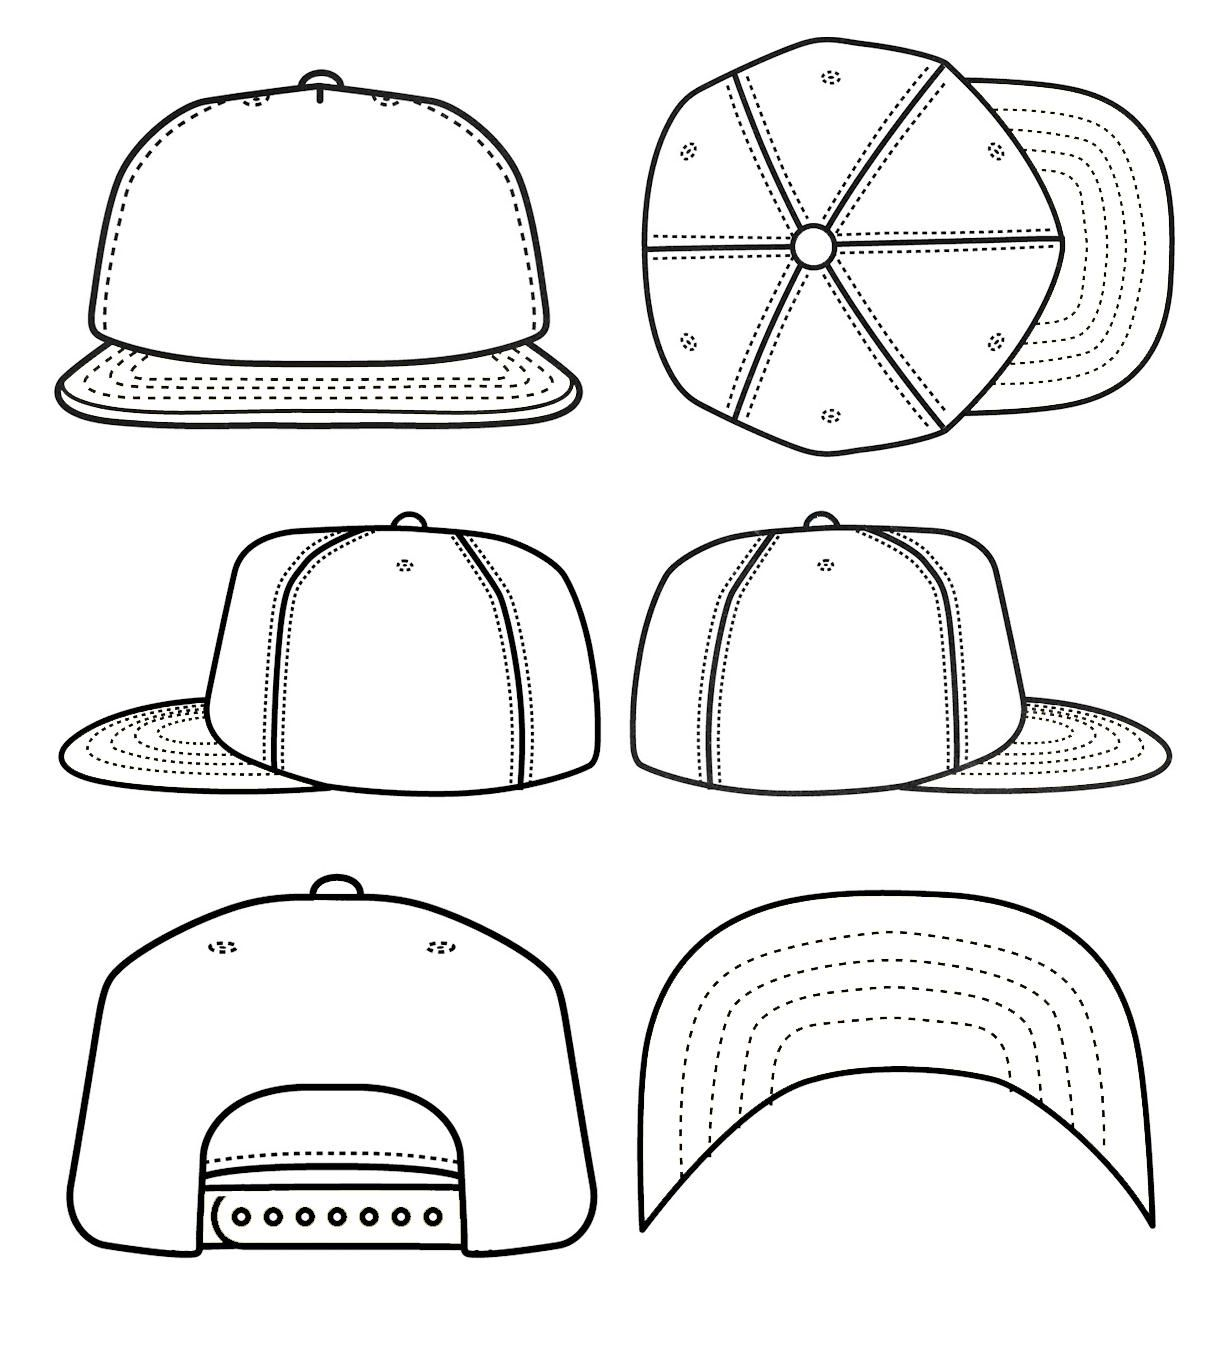 Beautiful 1 Hexagon Template Huge 1 Week Calendar Template Flat 1 Year Experience Resume Format For Dot Net 1.5 Button Template Youthful 10 Steps Writing Resume Dark100 Best Resume Words Best Photos Of Blank Snapback Stencil   Snapback Hat Template ..